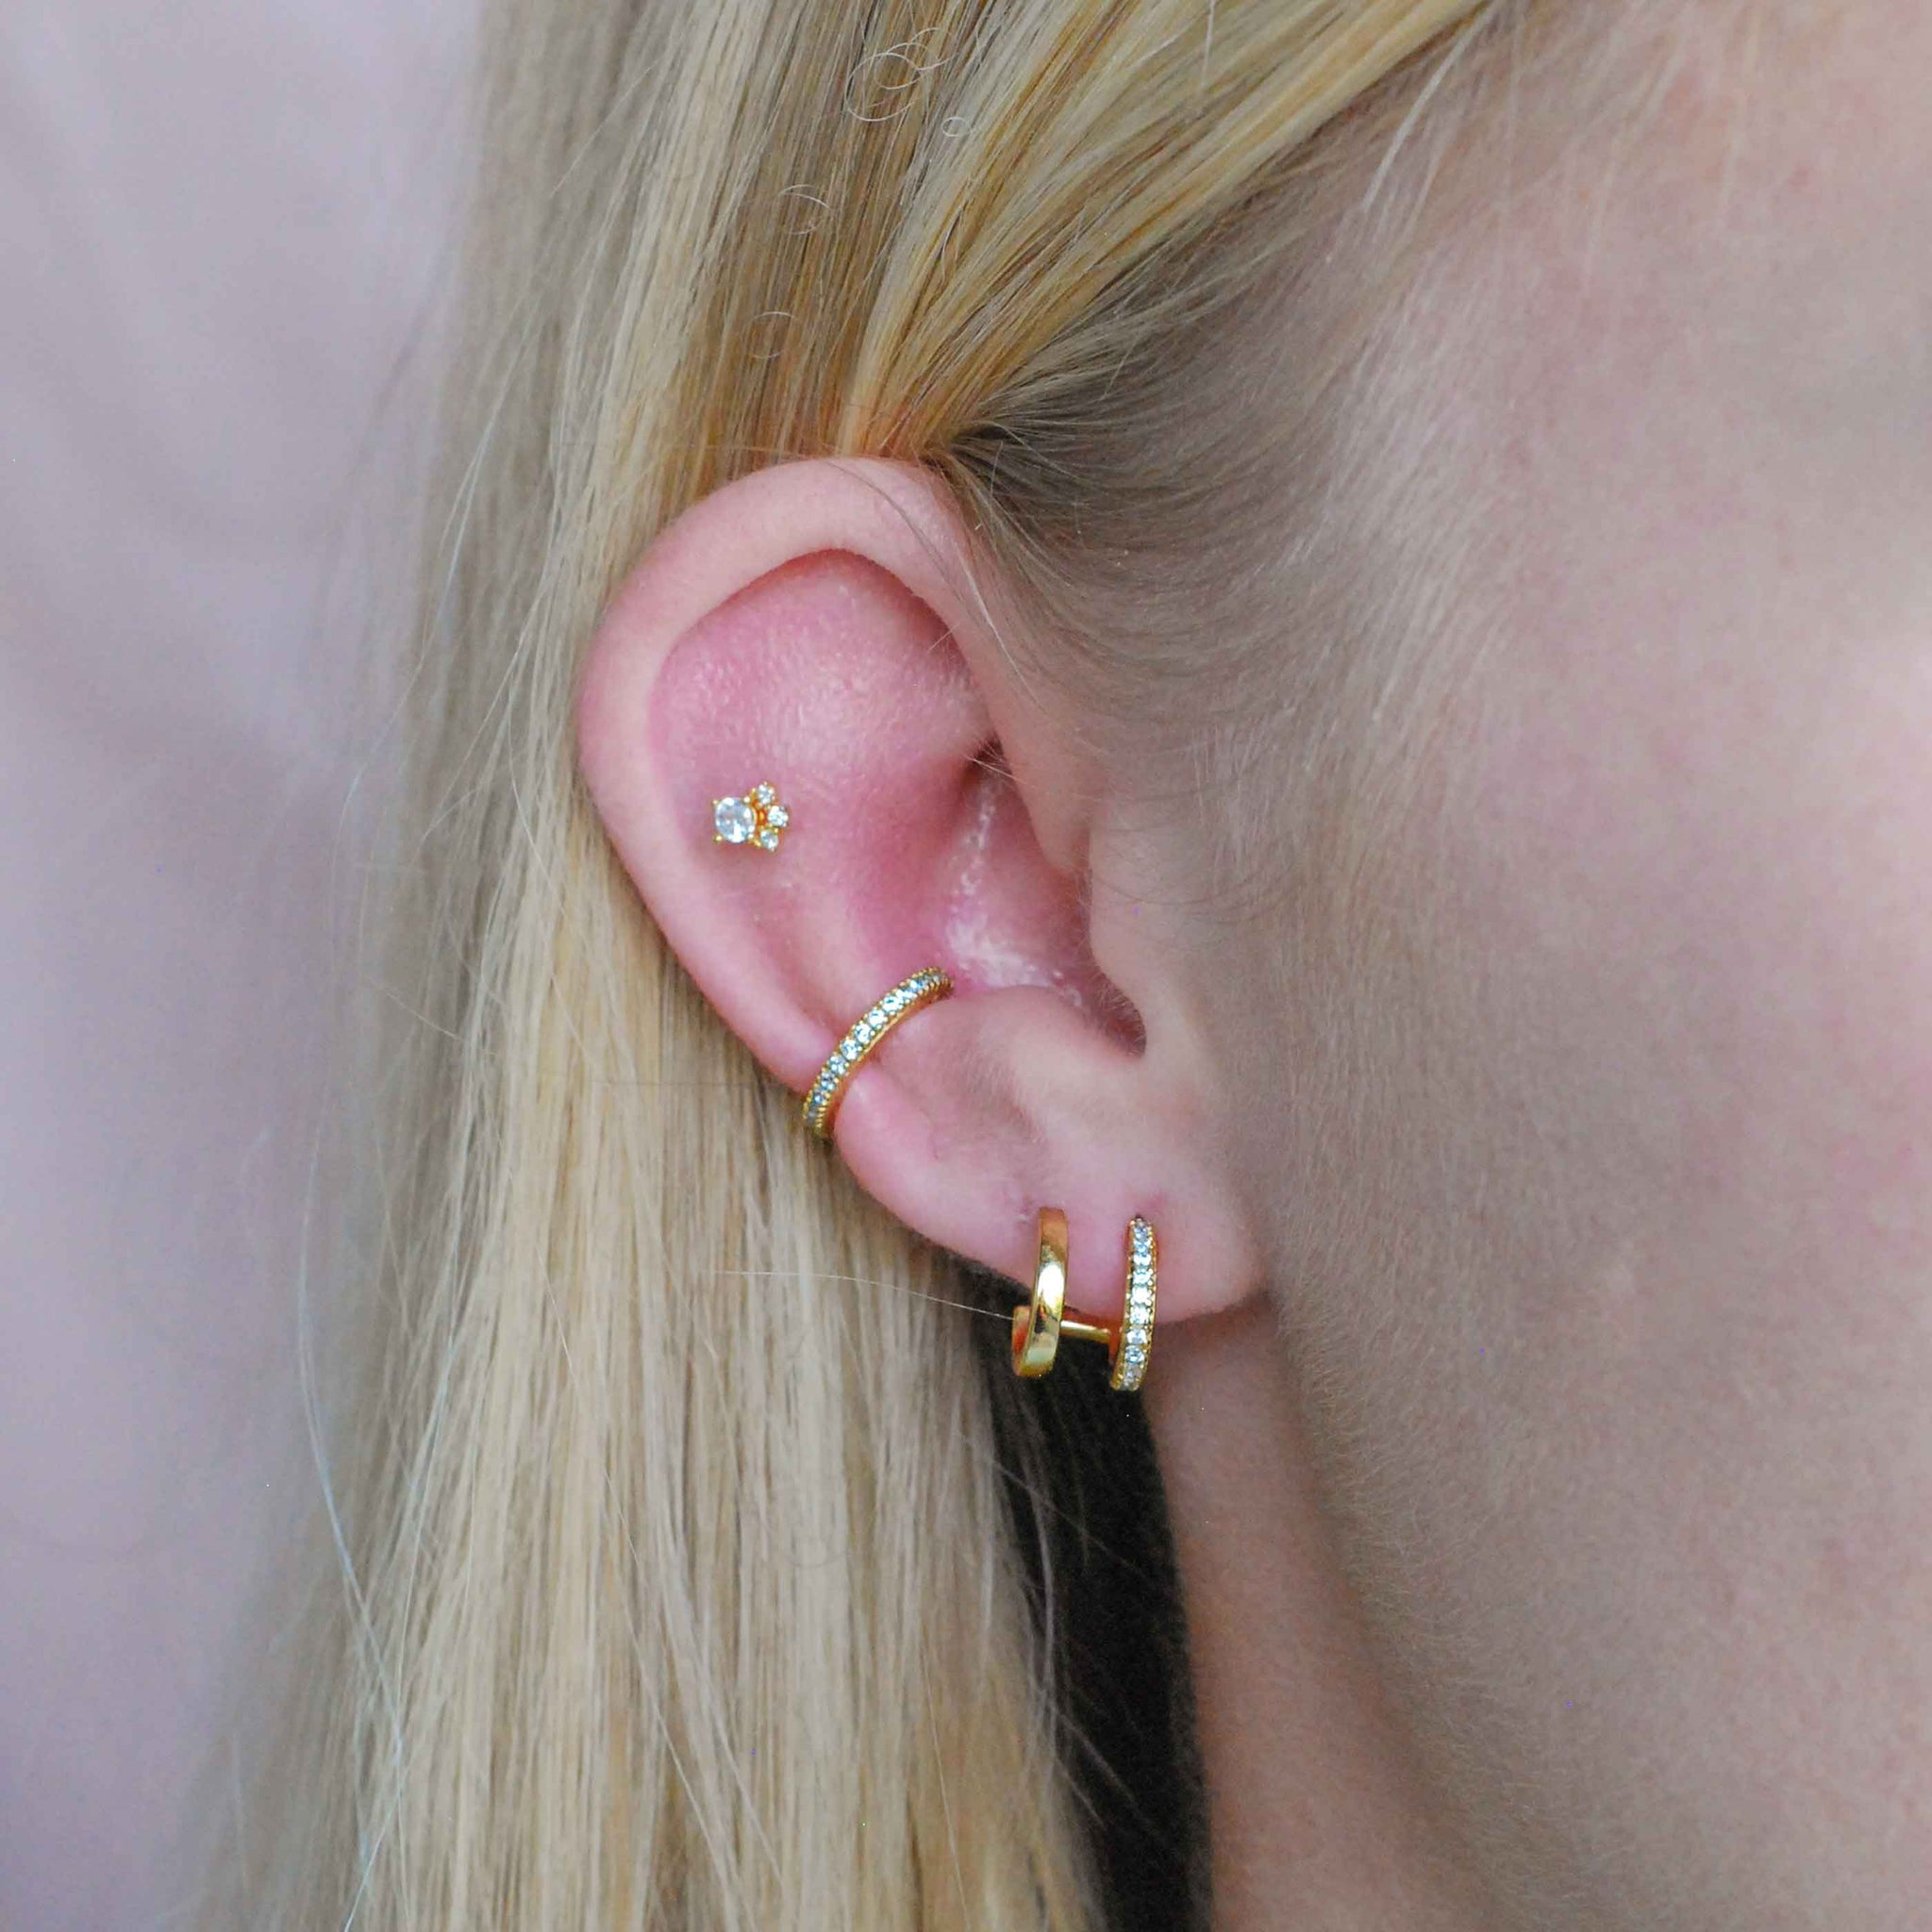 Crystal Ear Cuff in Gold worn with sparkling earrings